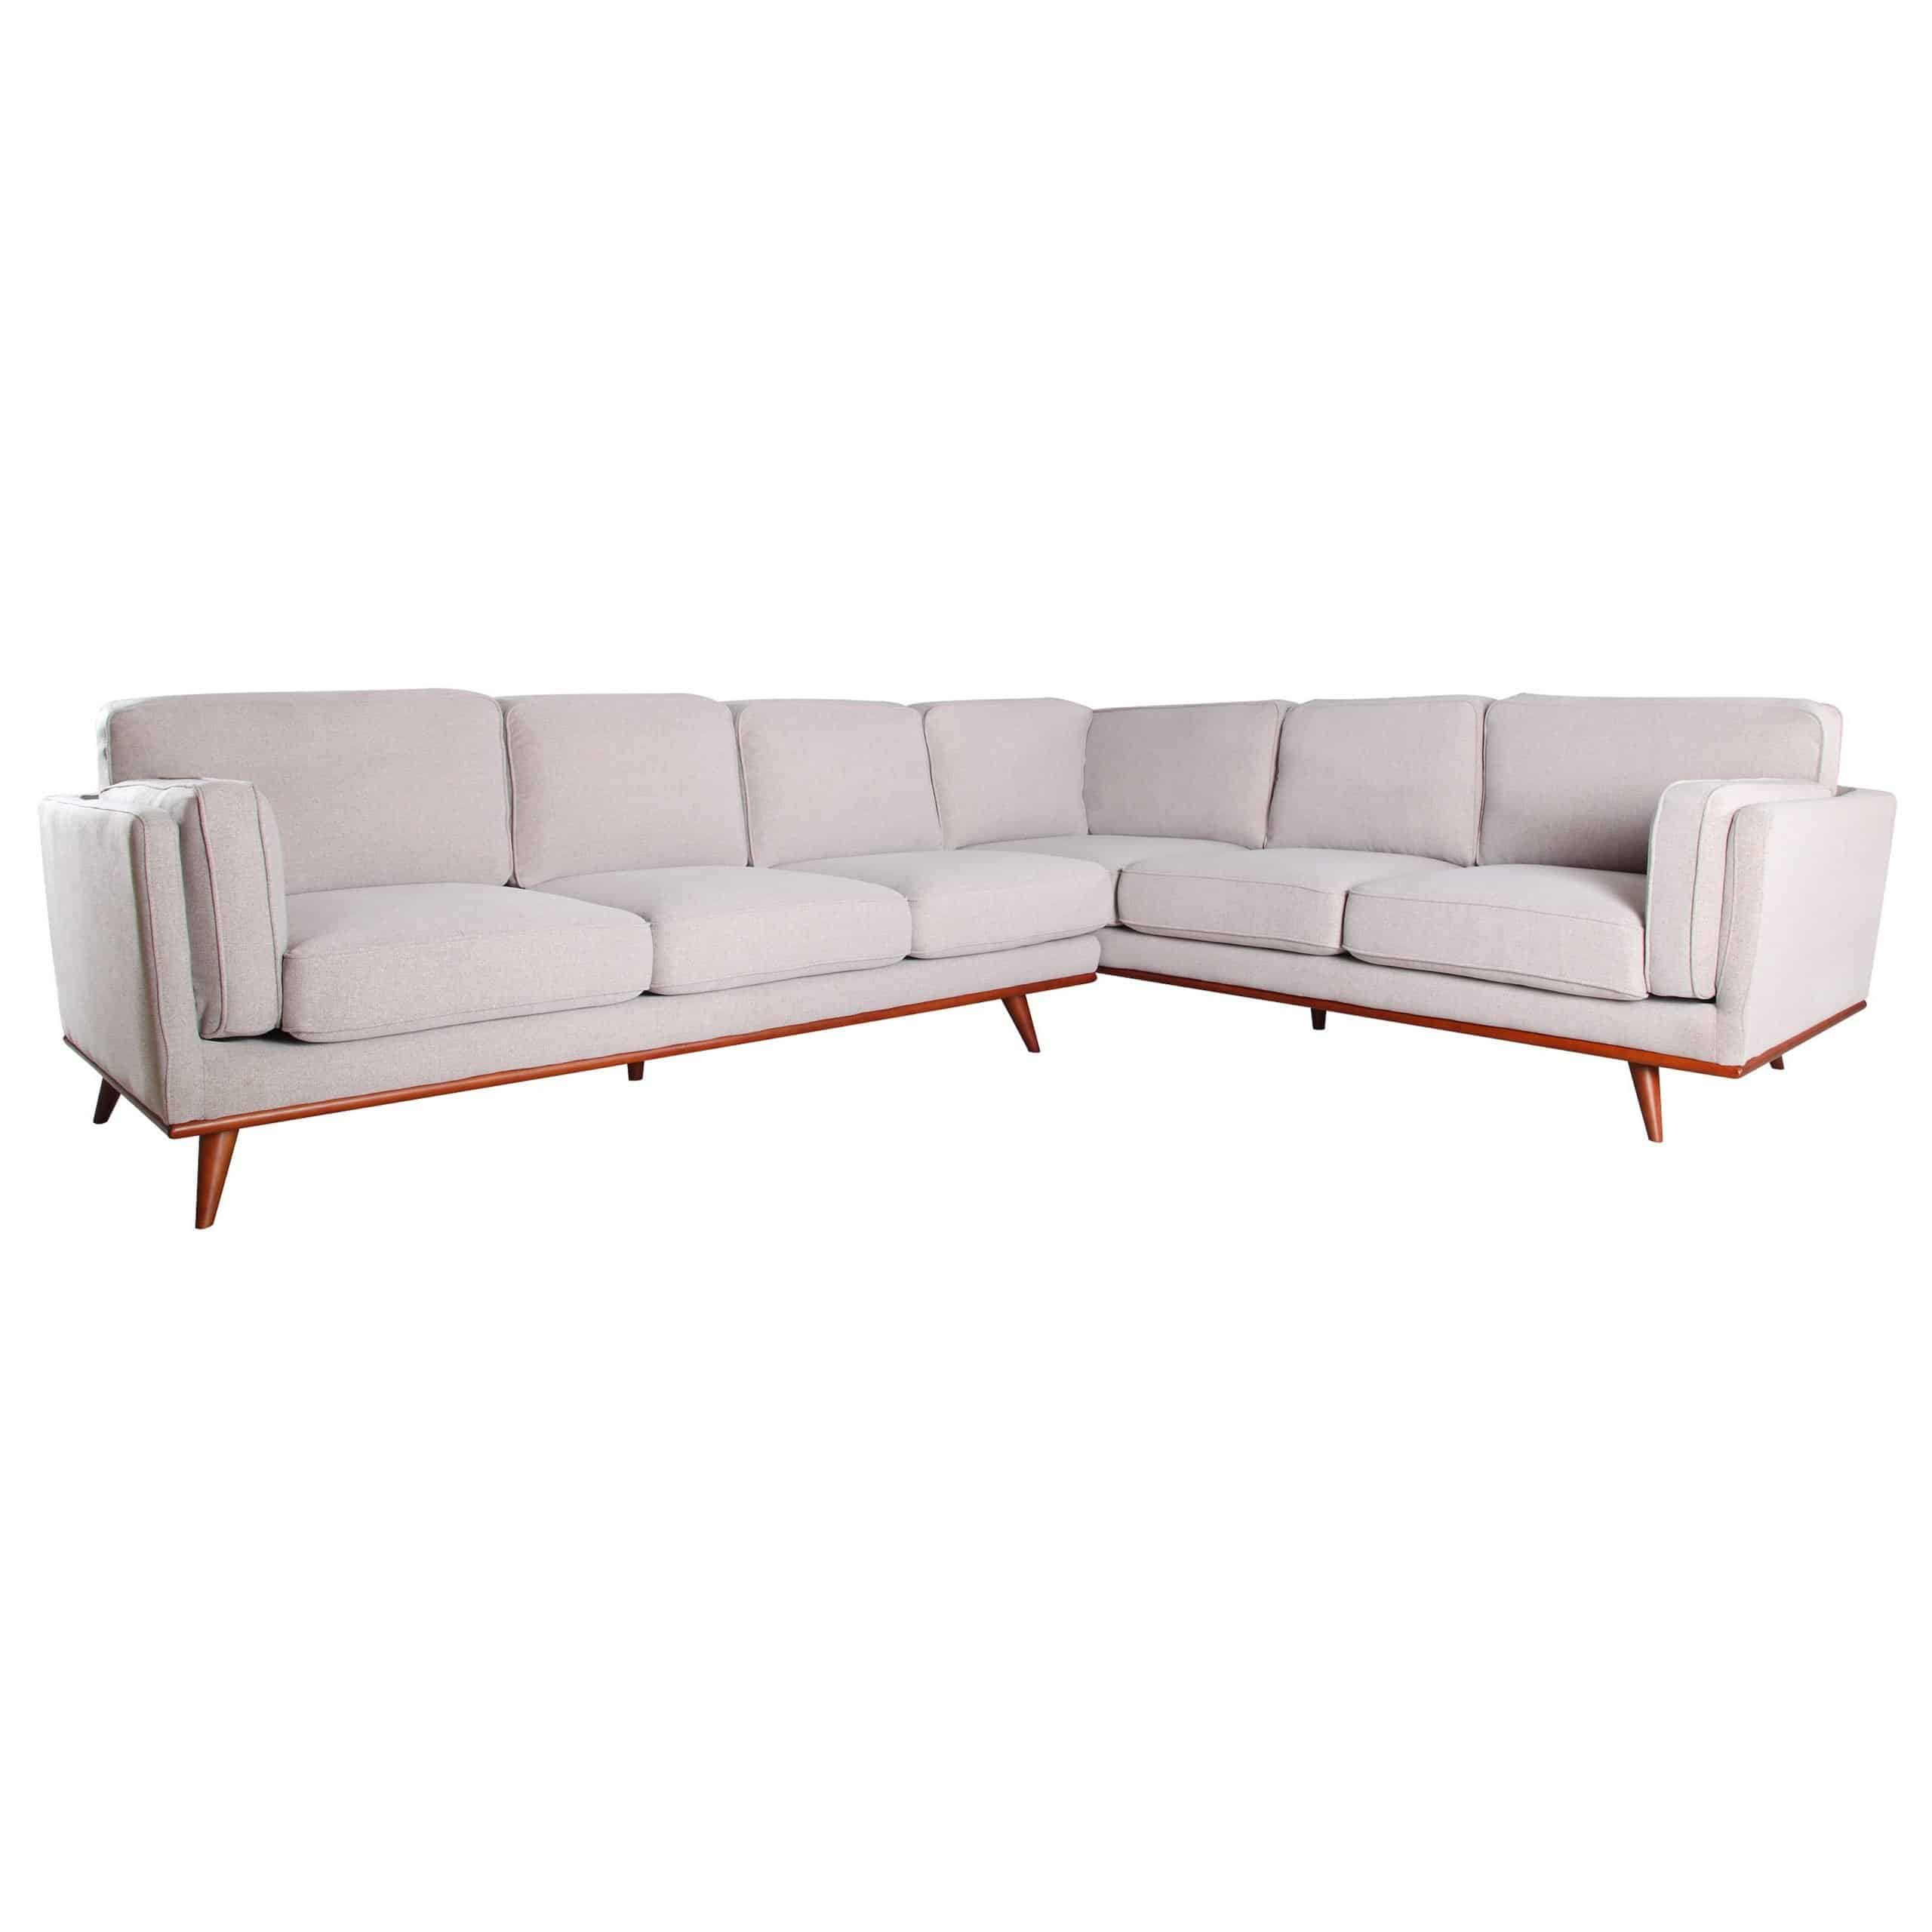 Image of: Willard Mid Century Sectional Sofa By Canary Kfrooms